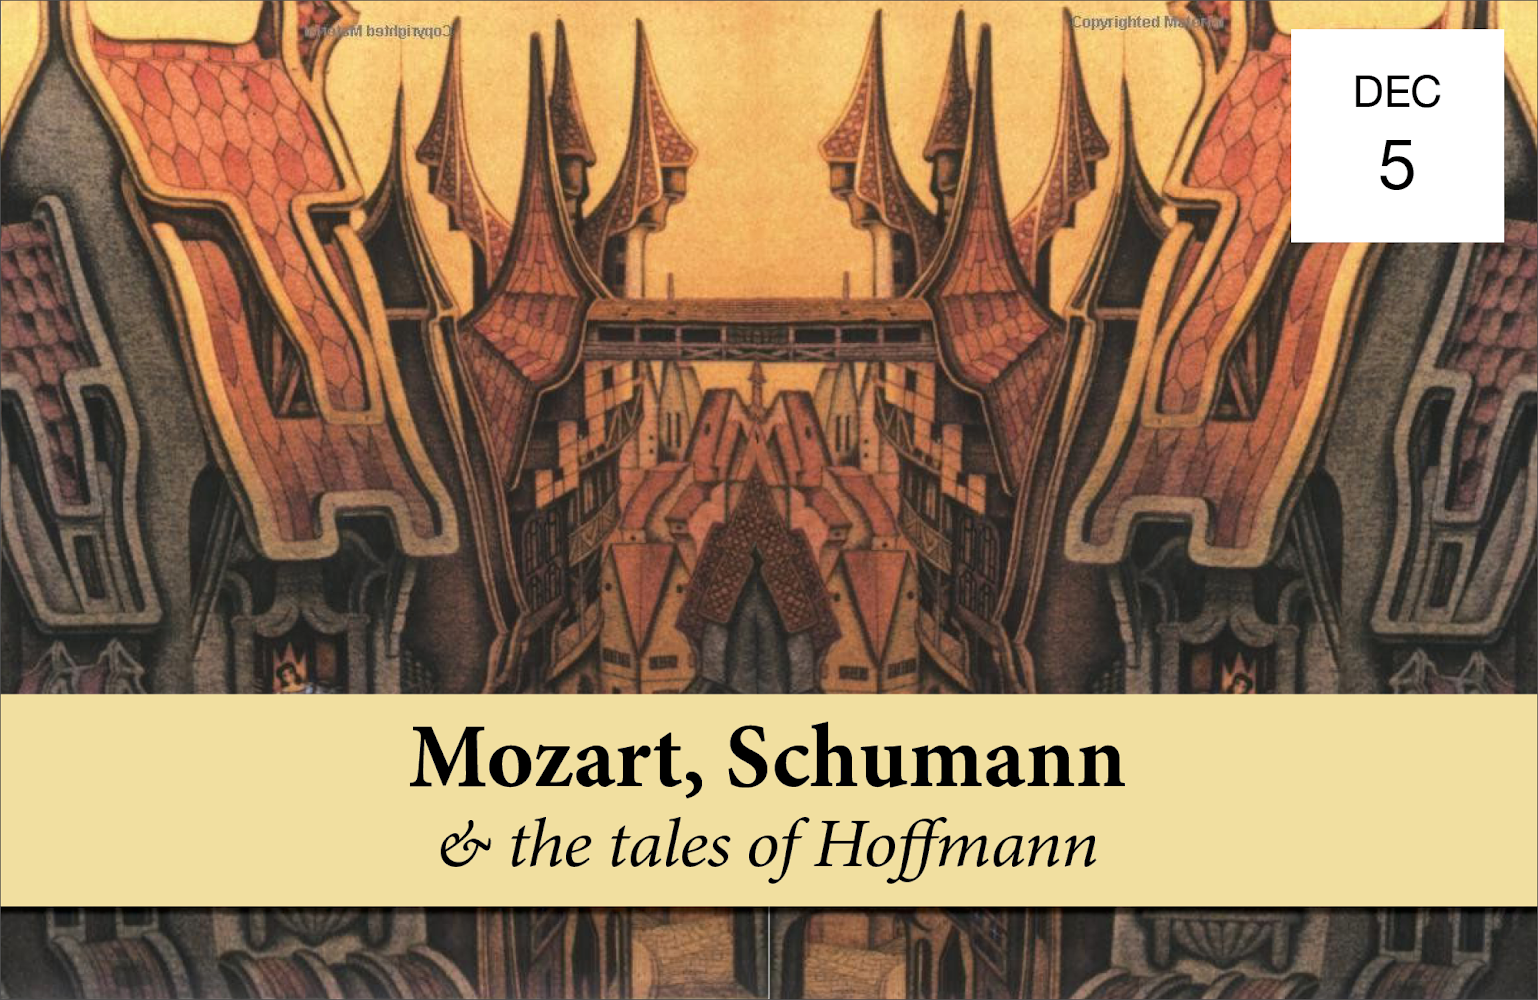 MOZART, SCHUMANN & THE TALES OF HOFFMANN - Wednesday, December 57:30 PMBohemian National Hall321 E 73rd StreetPhilippe Quint violinGrace Park violinZlatomir Fung celloMatthew Lipman violaKyle Armbrust violaVsevolod Dvorkin pianoIllustrated talk by Damian FowlerMozart String Quintet No. 4 in G minor, K. 516Schumann Piano Quintet in E flat major, Op. 44Read MoreTICKETS $45